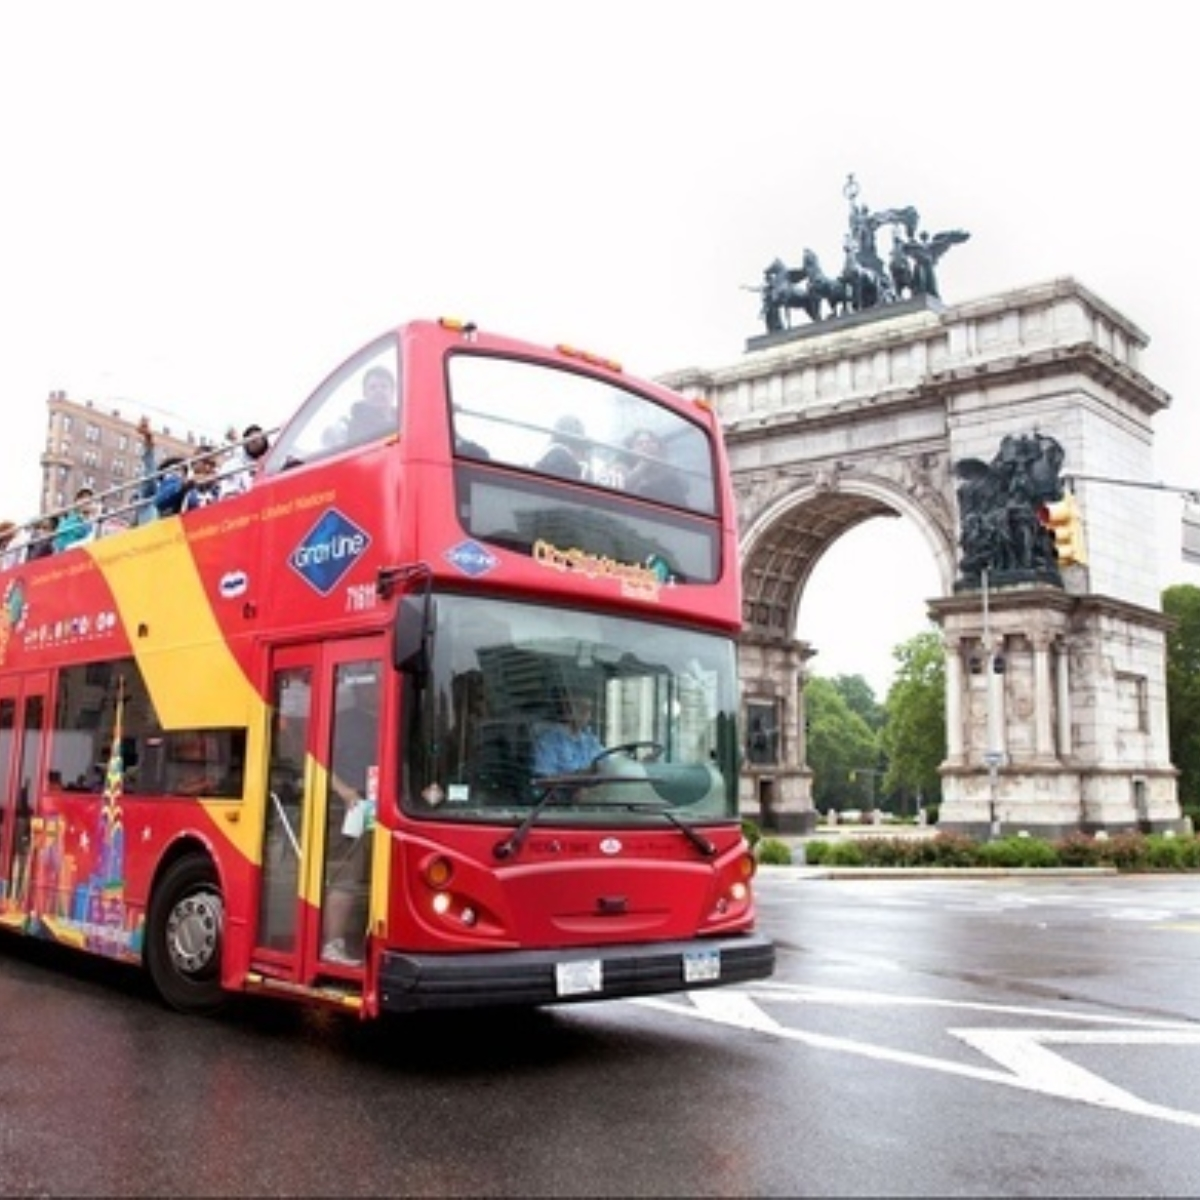 Hop-On Hop-Off Uptown + Downtown New York 2 days: 2 routes + 2 attractions Images